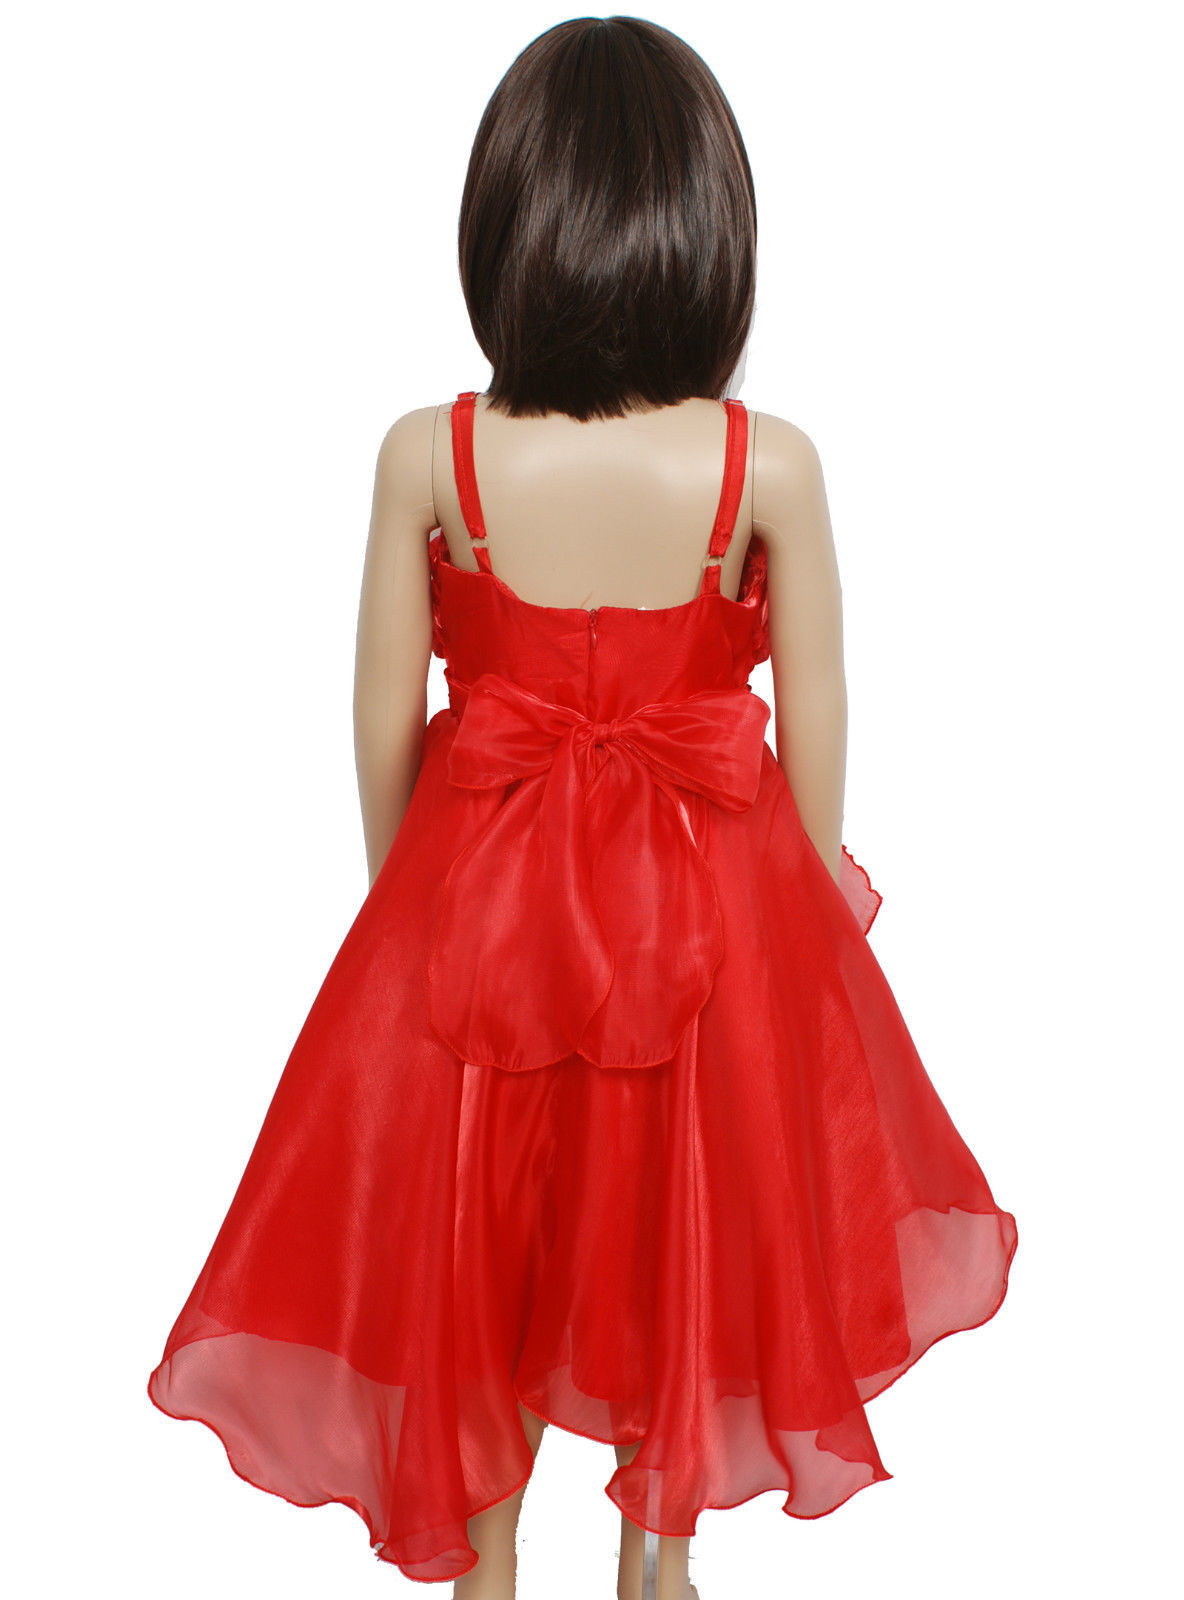 New Flower Girl Party Bridesmaid Pageant Dress in Pink,Red,White 2-3 to 5-6 Year